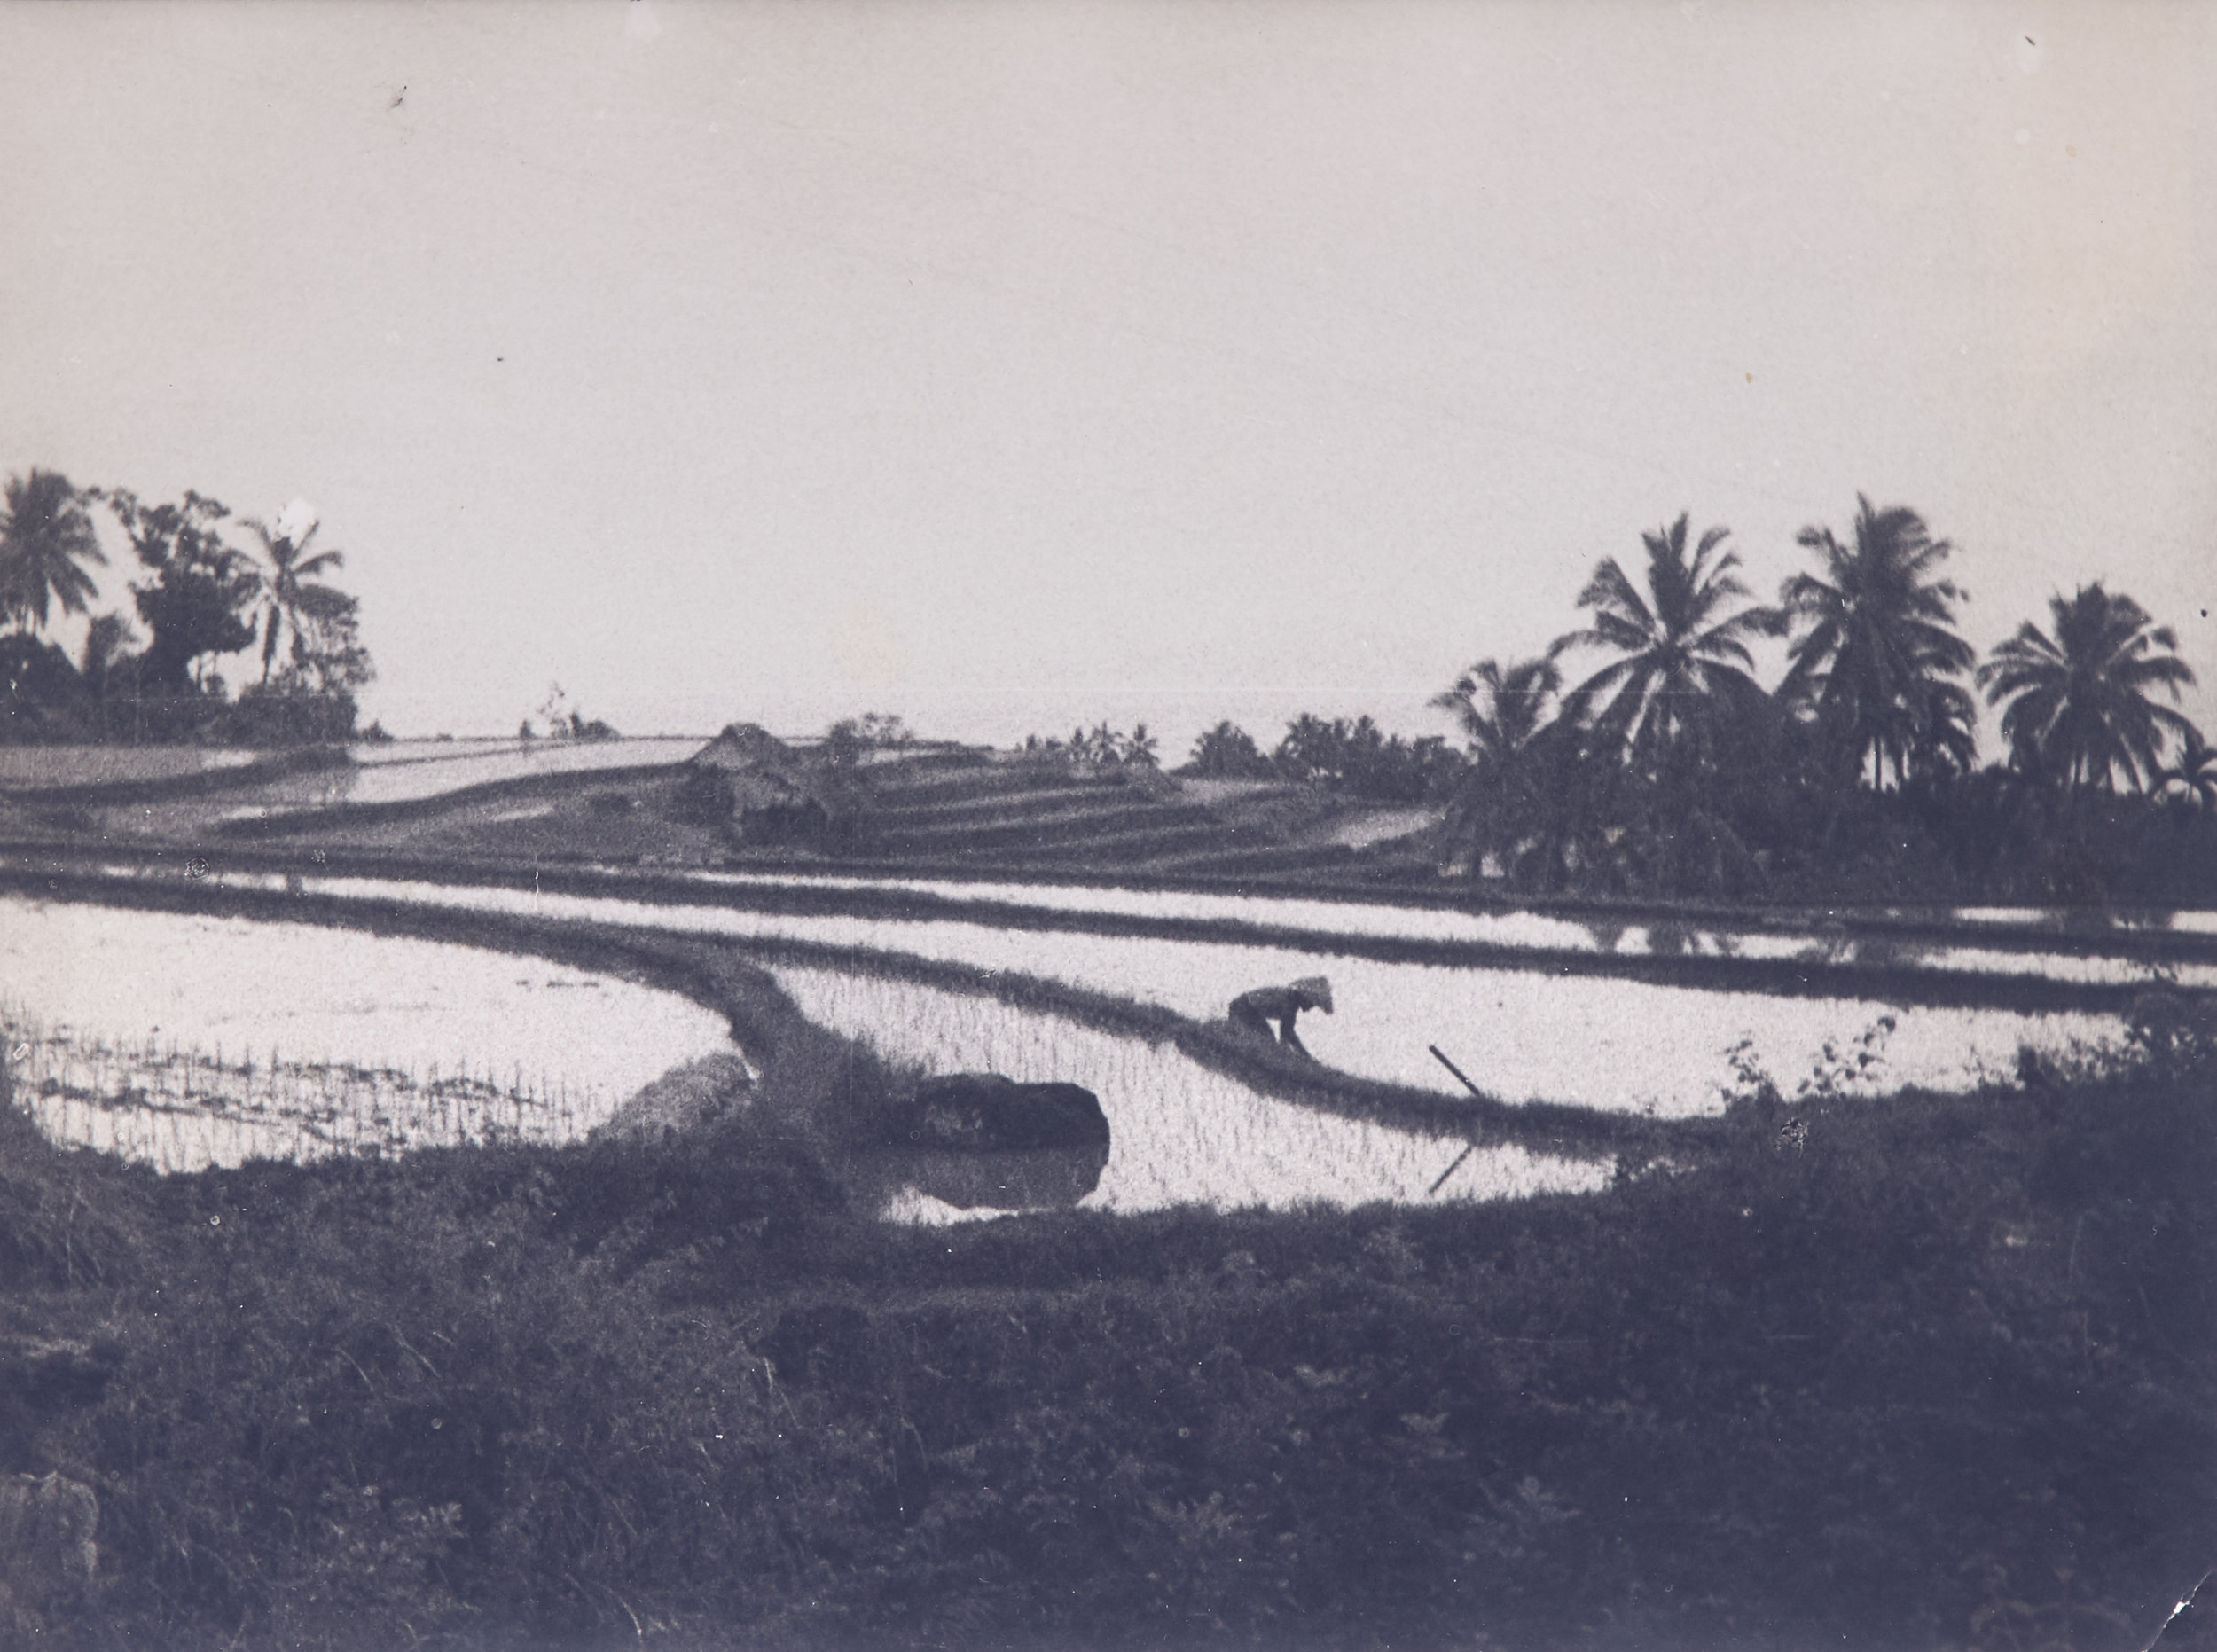 Arthur Fleischmann, Paddy fields at Dawn, gelatin silver print, 15.5 x 20.5 cm.